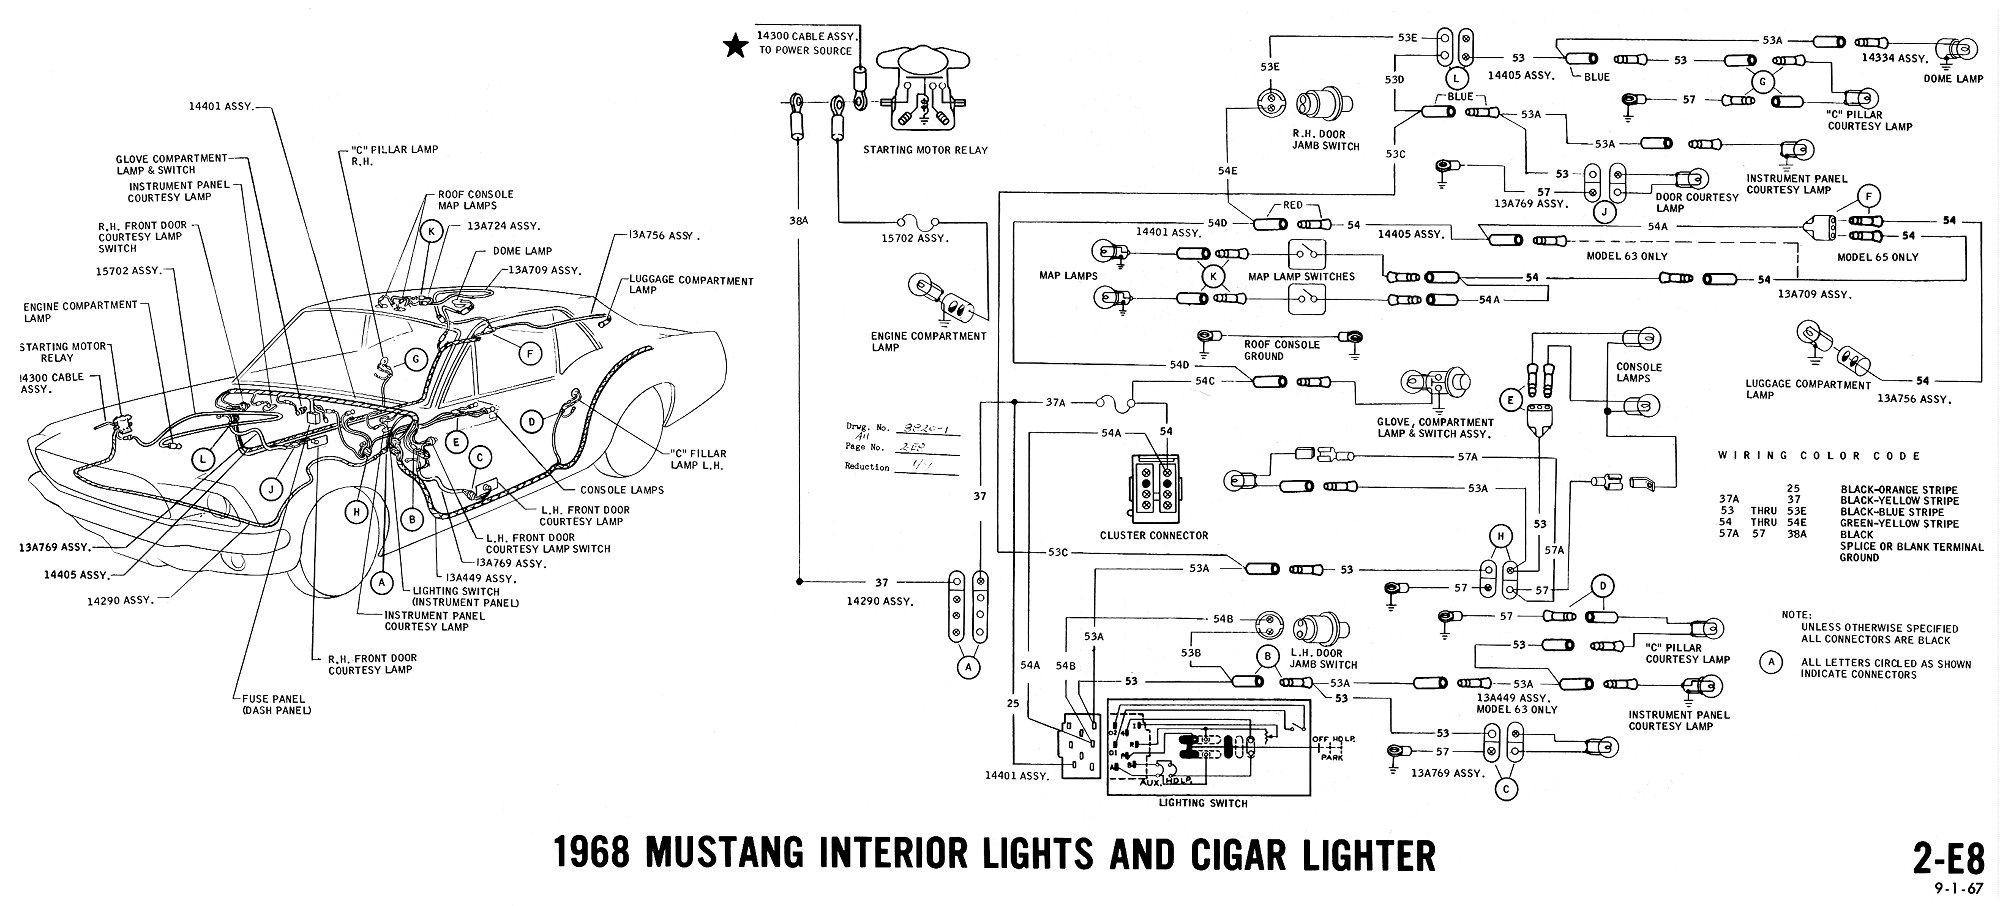 65 Eng W Gauges For Wiring Diagrams Trucks likewise Schematics h further Blog in addition Case 446 Tractor Parts Manual Free besides 76003. on 1965 ford truck wiring diagram